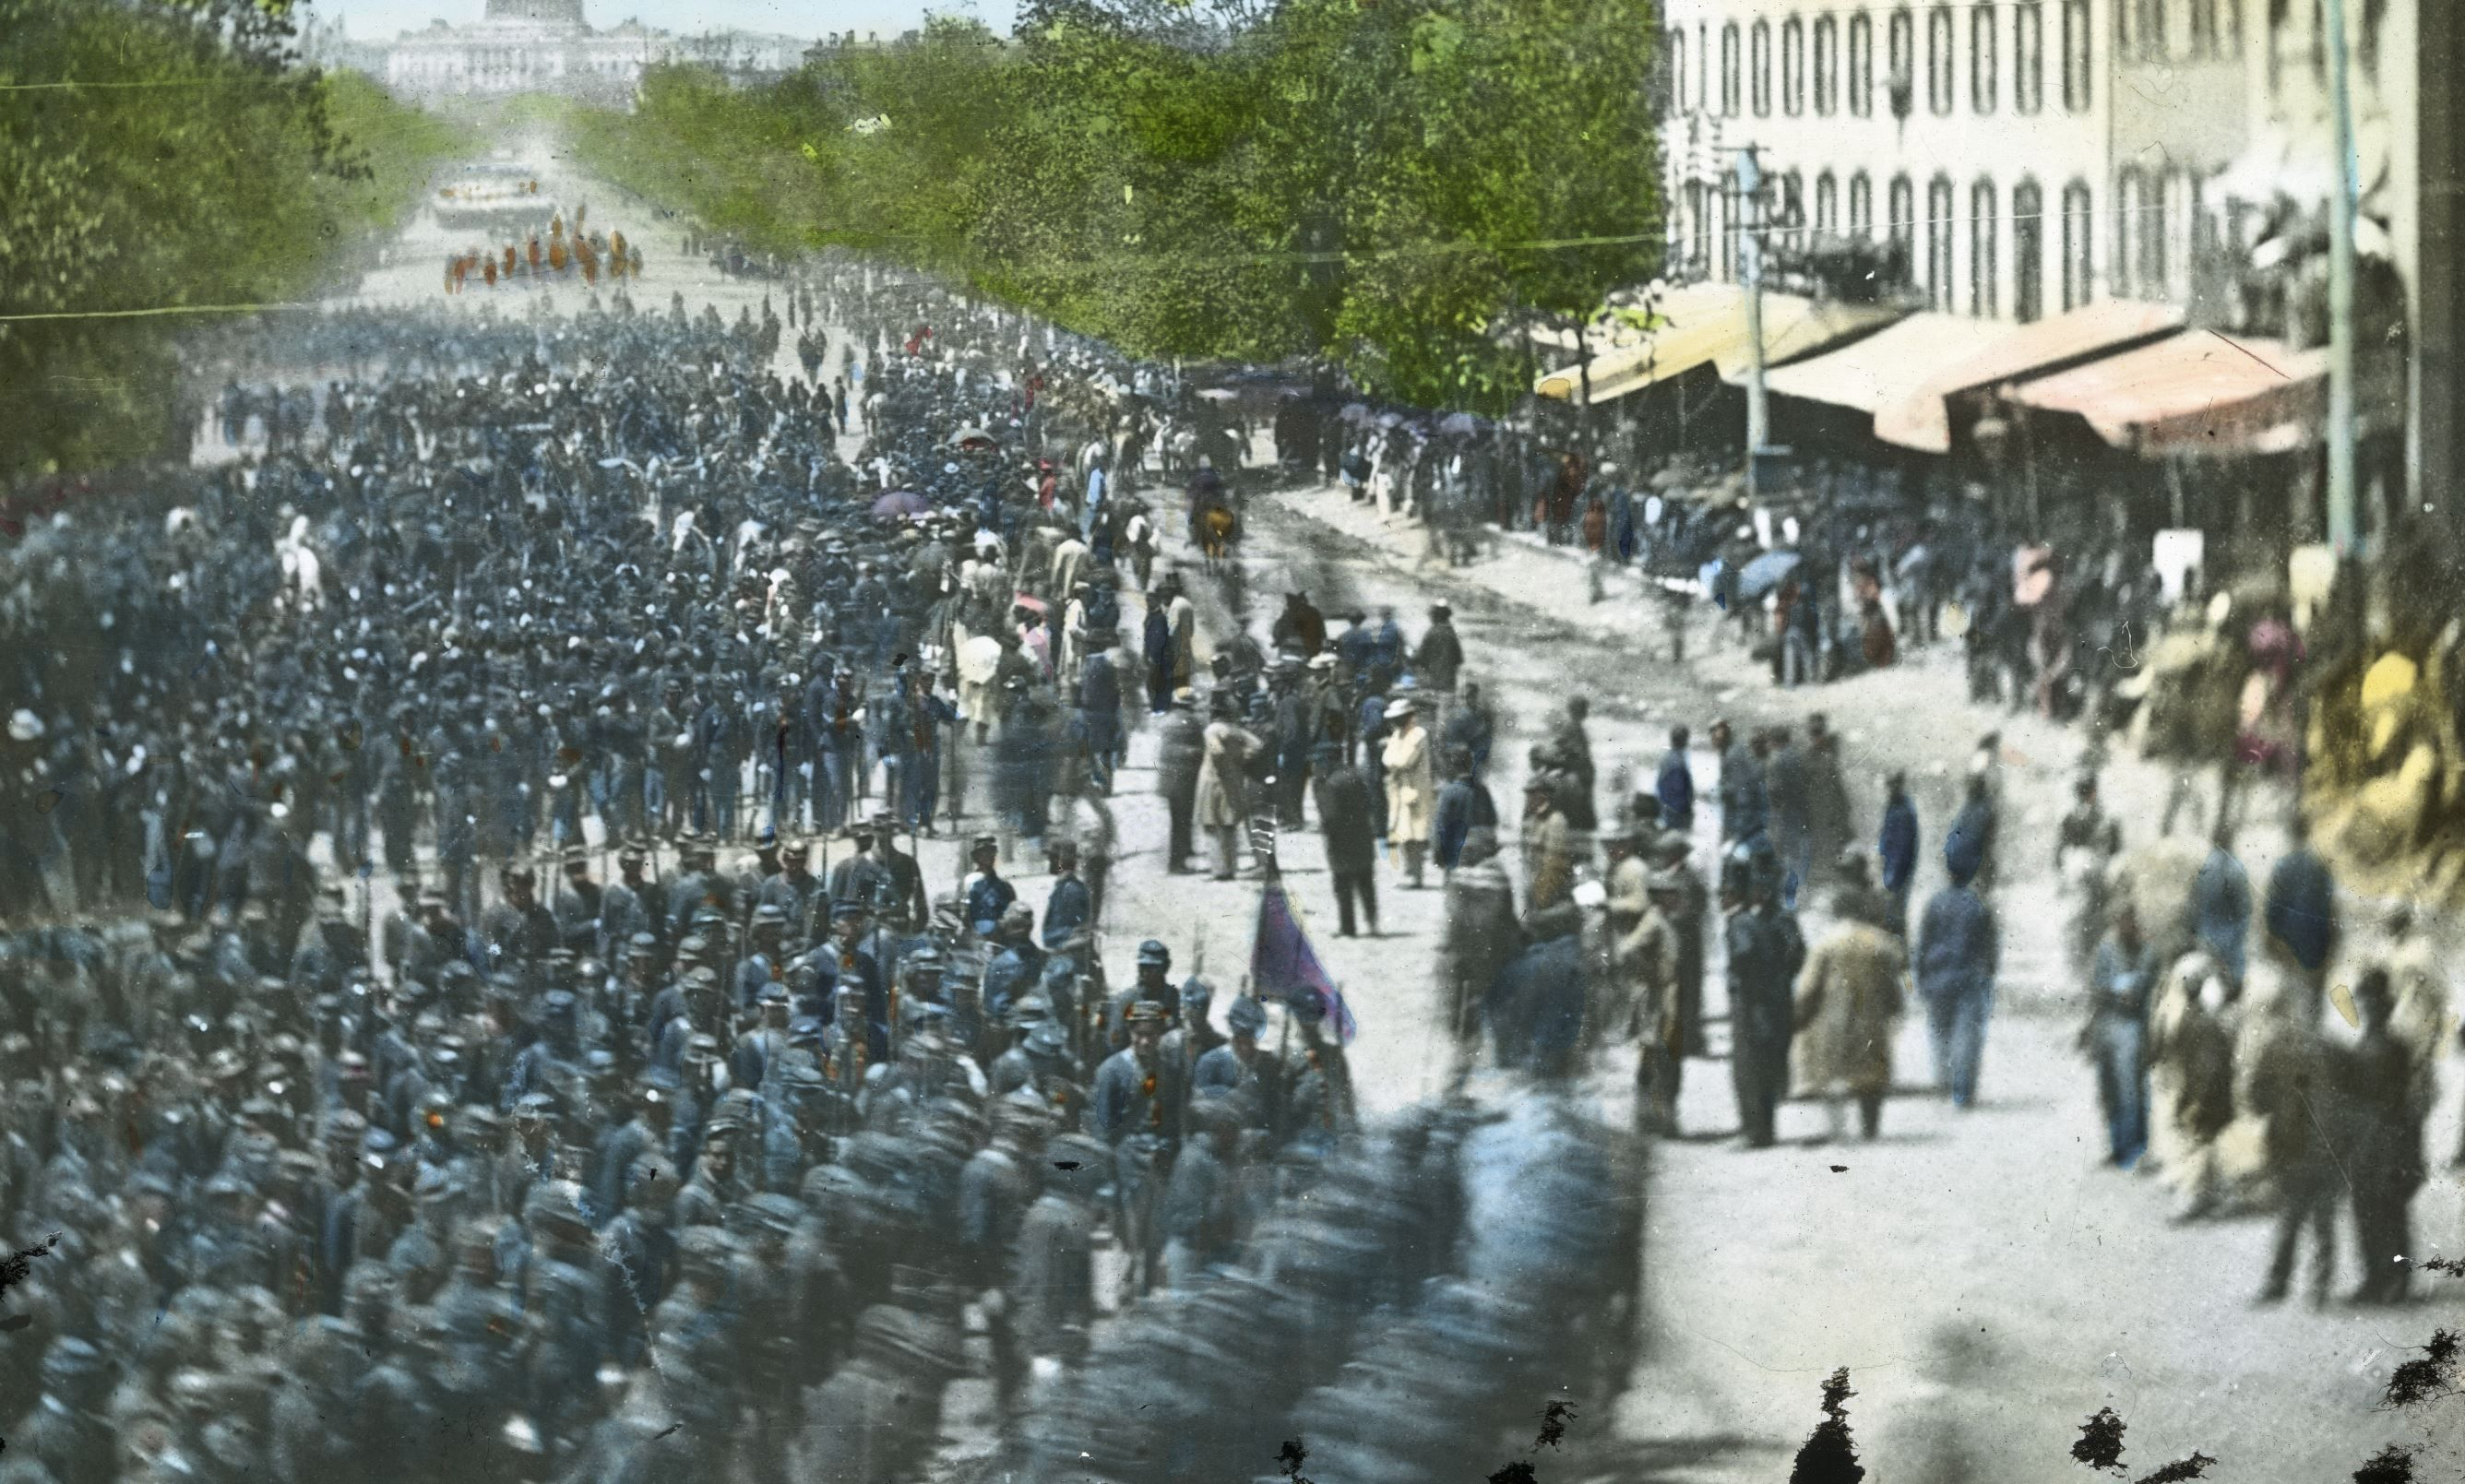 After four years of war, the Confederates surrendered to the United States in April 1865.  Pictured: the Union Army marches into Washington DC in 1865.